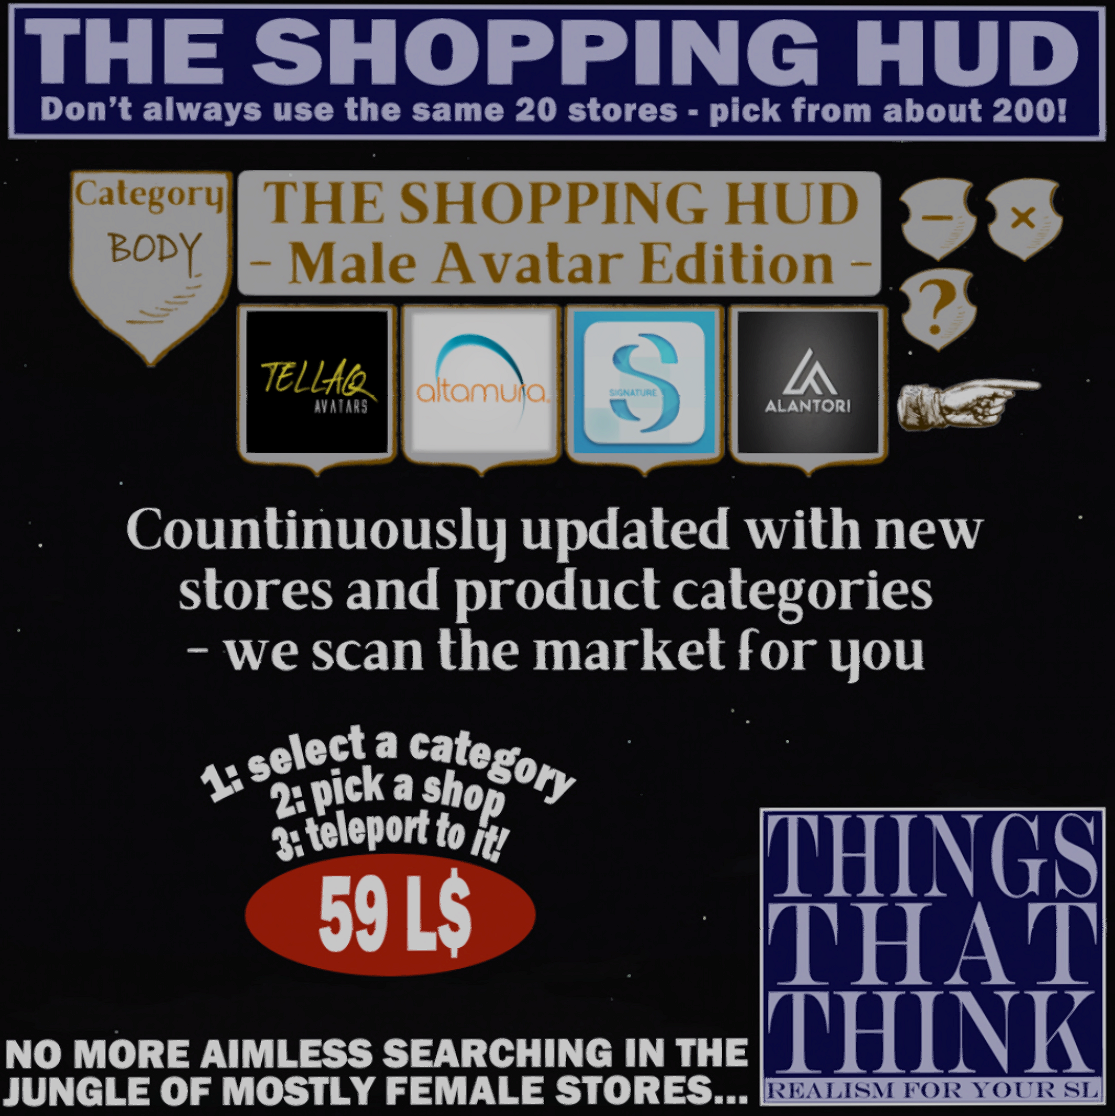 We scan the market for you